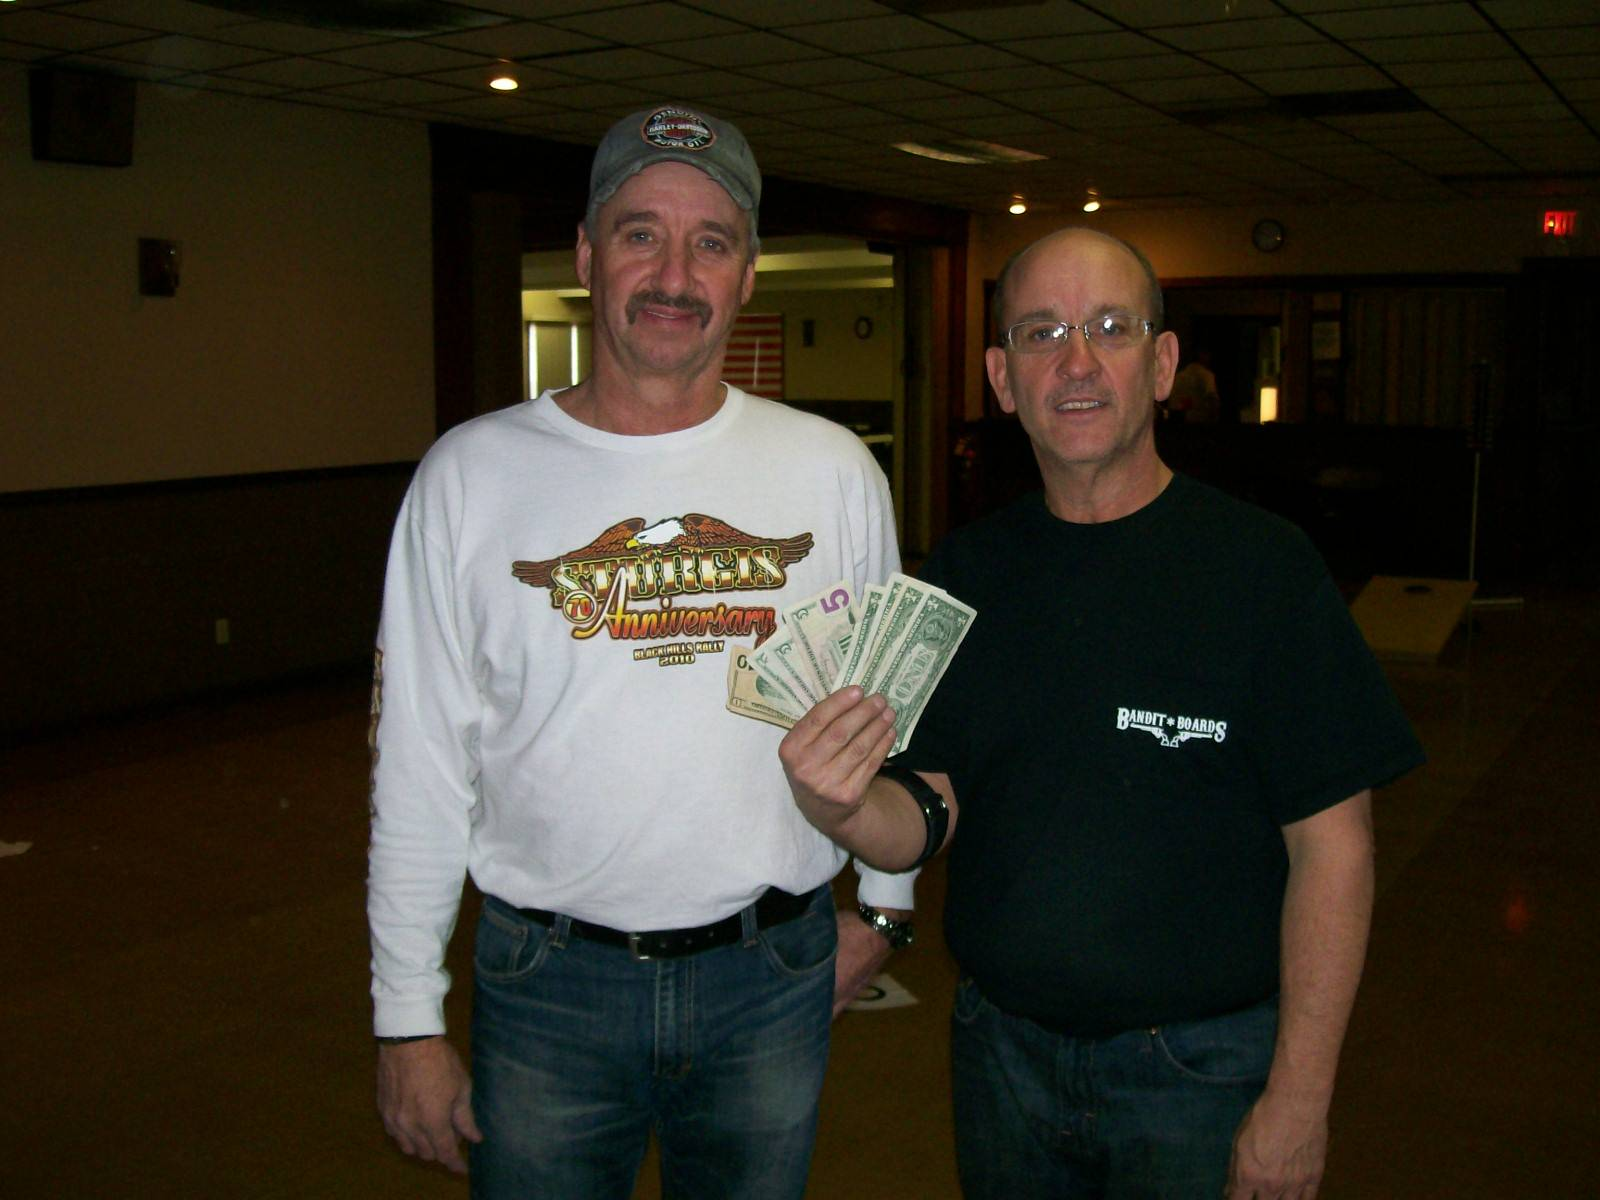 2nd place doubles - Steve Stewart and Dale Shobe (Jan. 15, 2011)